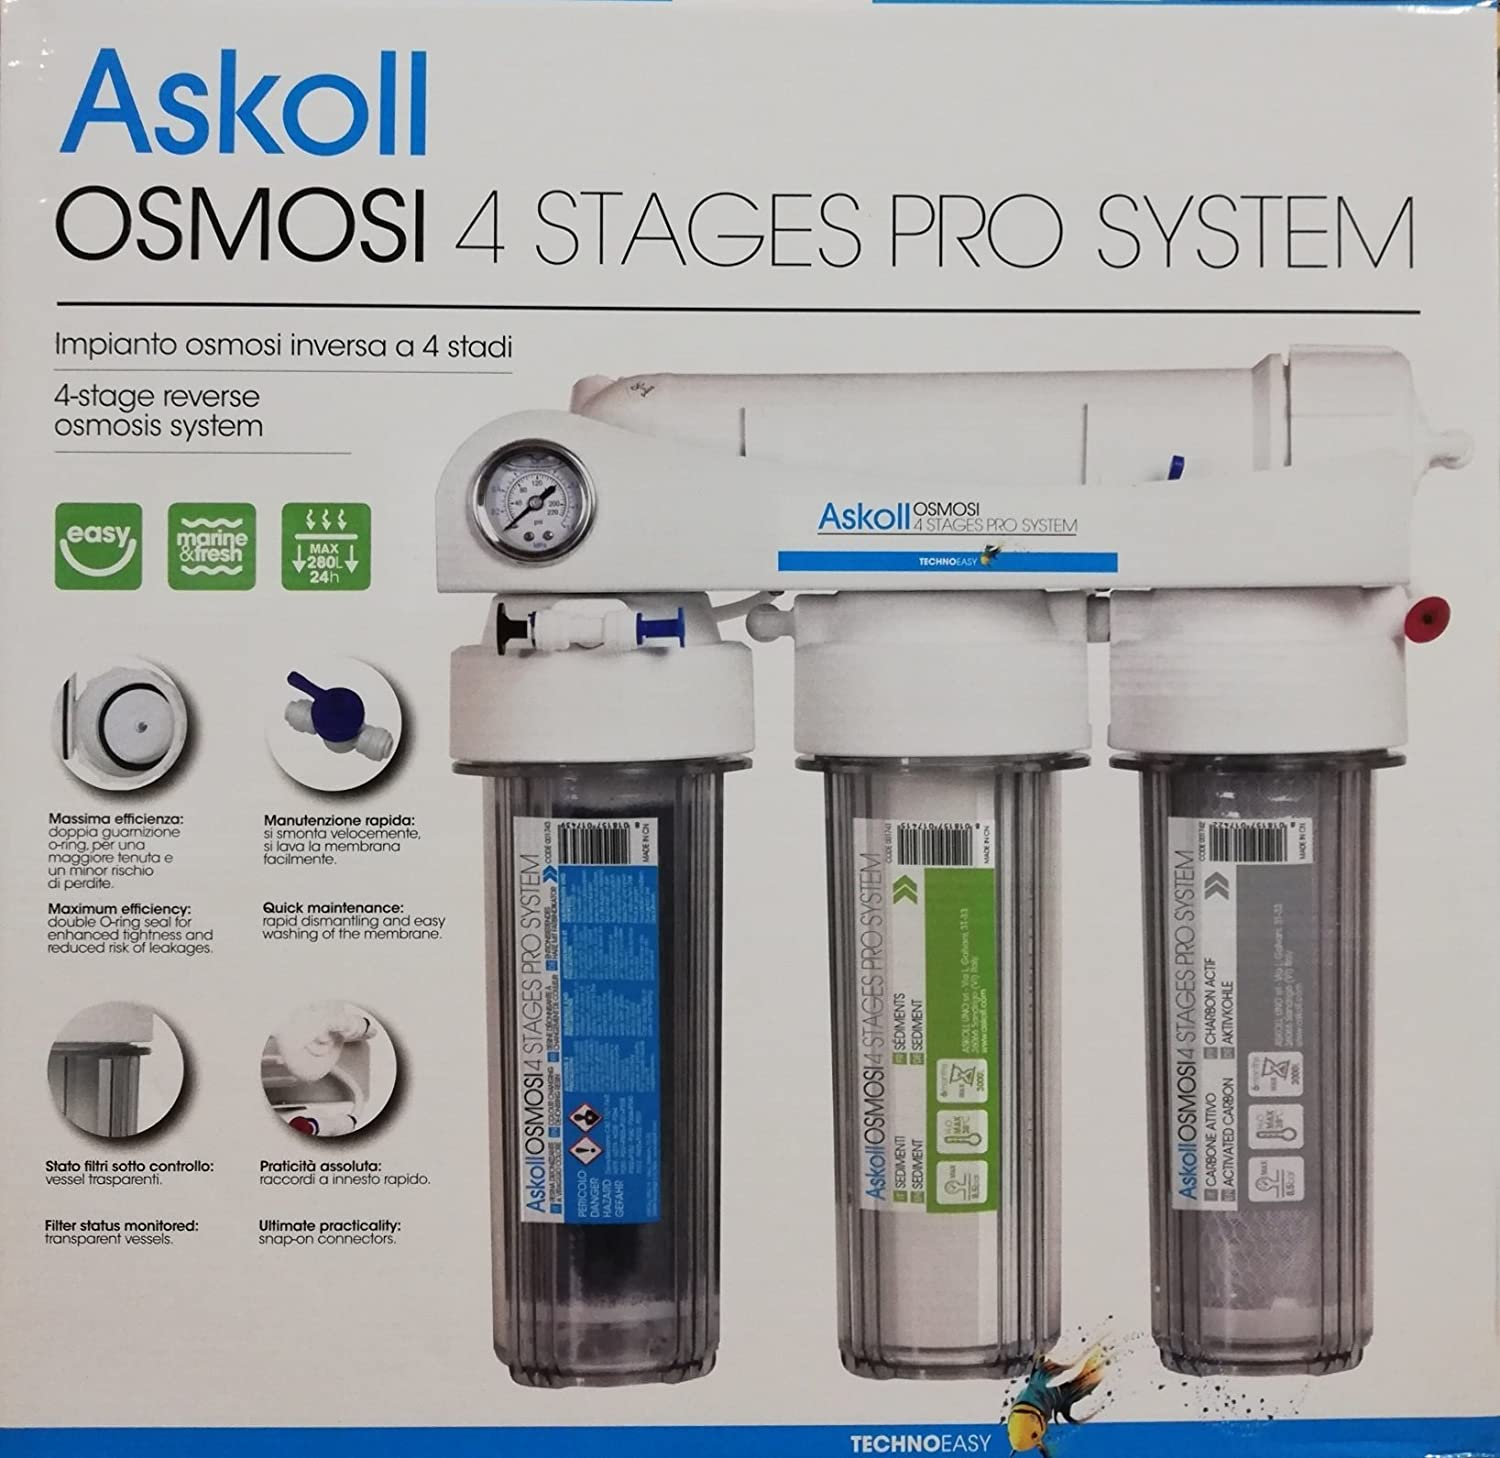 Askoll 001740 Reverse Osmosis System 4 STADI PRO SYSTEM for Aquariums